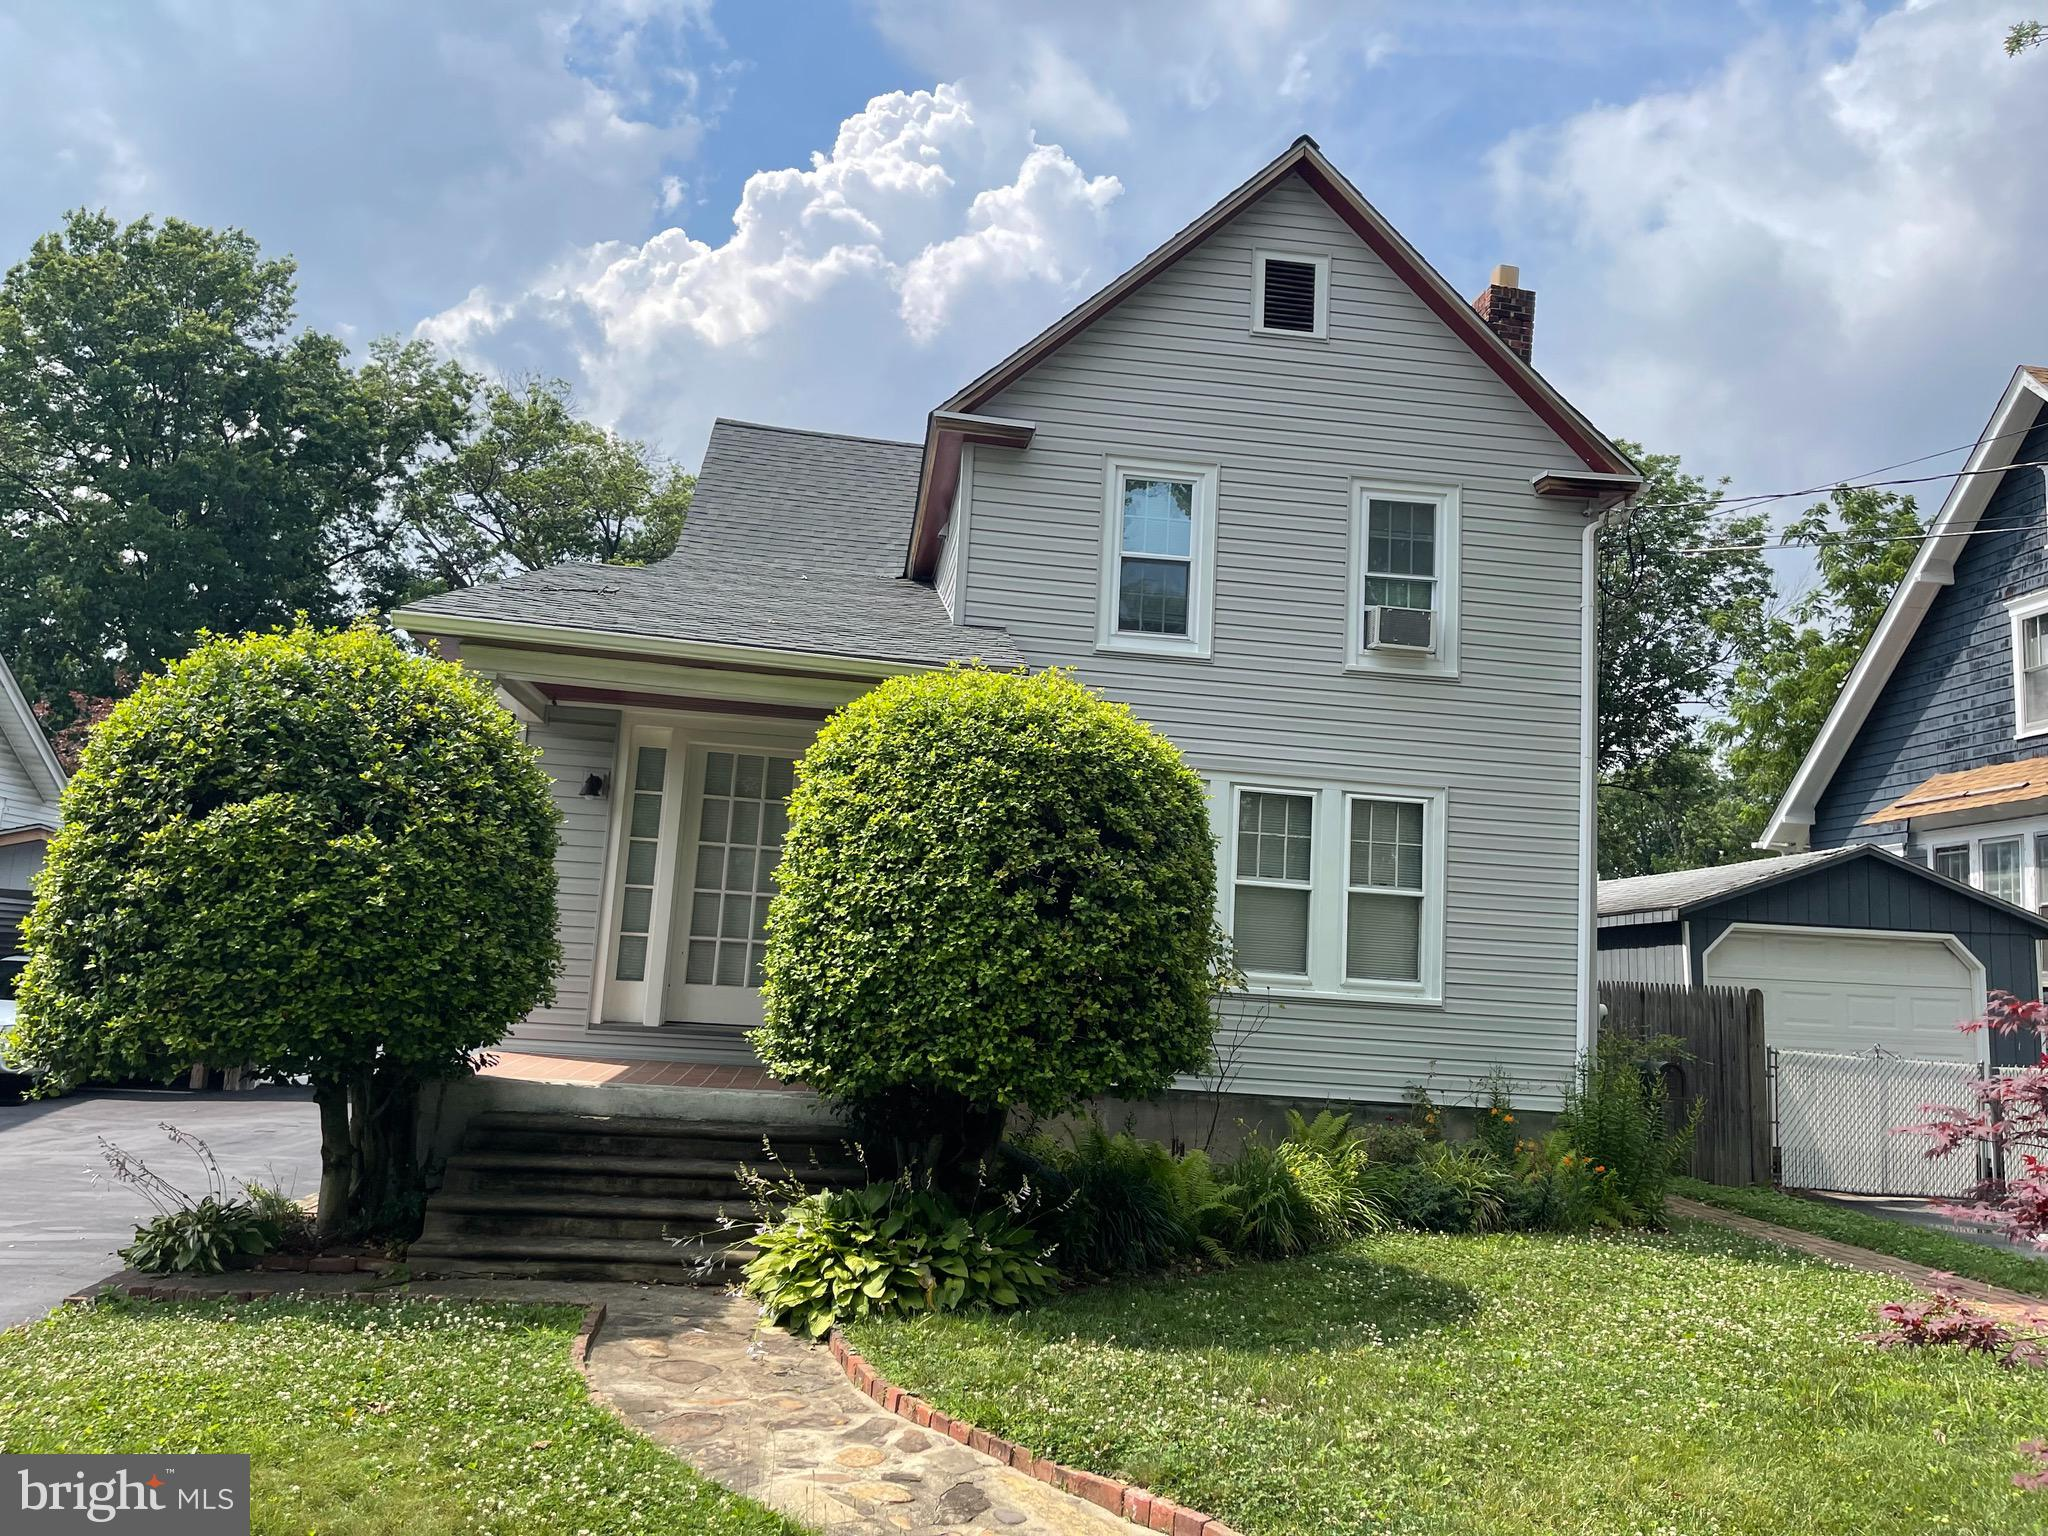 Nice opportunity to own an income producing duplex in Claymont De. Pride of ownership is shown throughout. The seller has updated the kitchen and baths, flooring and roof. There is really nothing left to do. The upstairs tenant is month to month paying $950.00 a month and wishes to stay. The current owner lives in the first floor unit. There is an oversized workshop on the property. This is a chance to purchase an income producing property with two units or live in one unit and continue to rent the other.